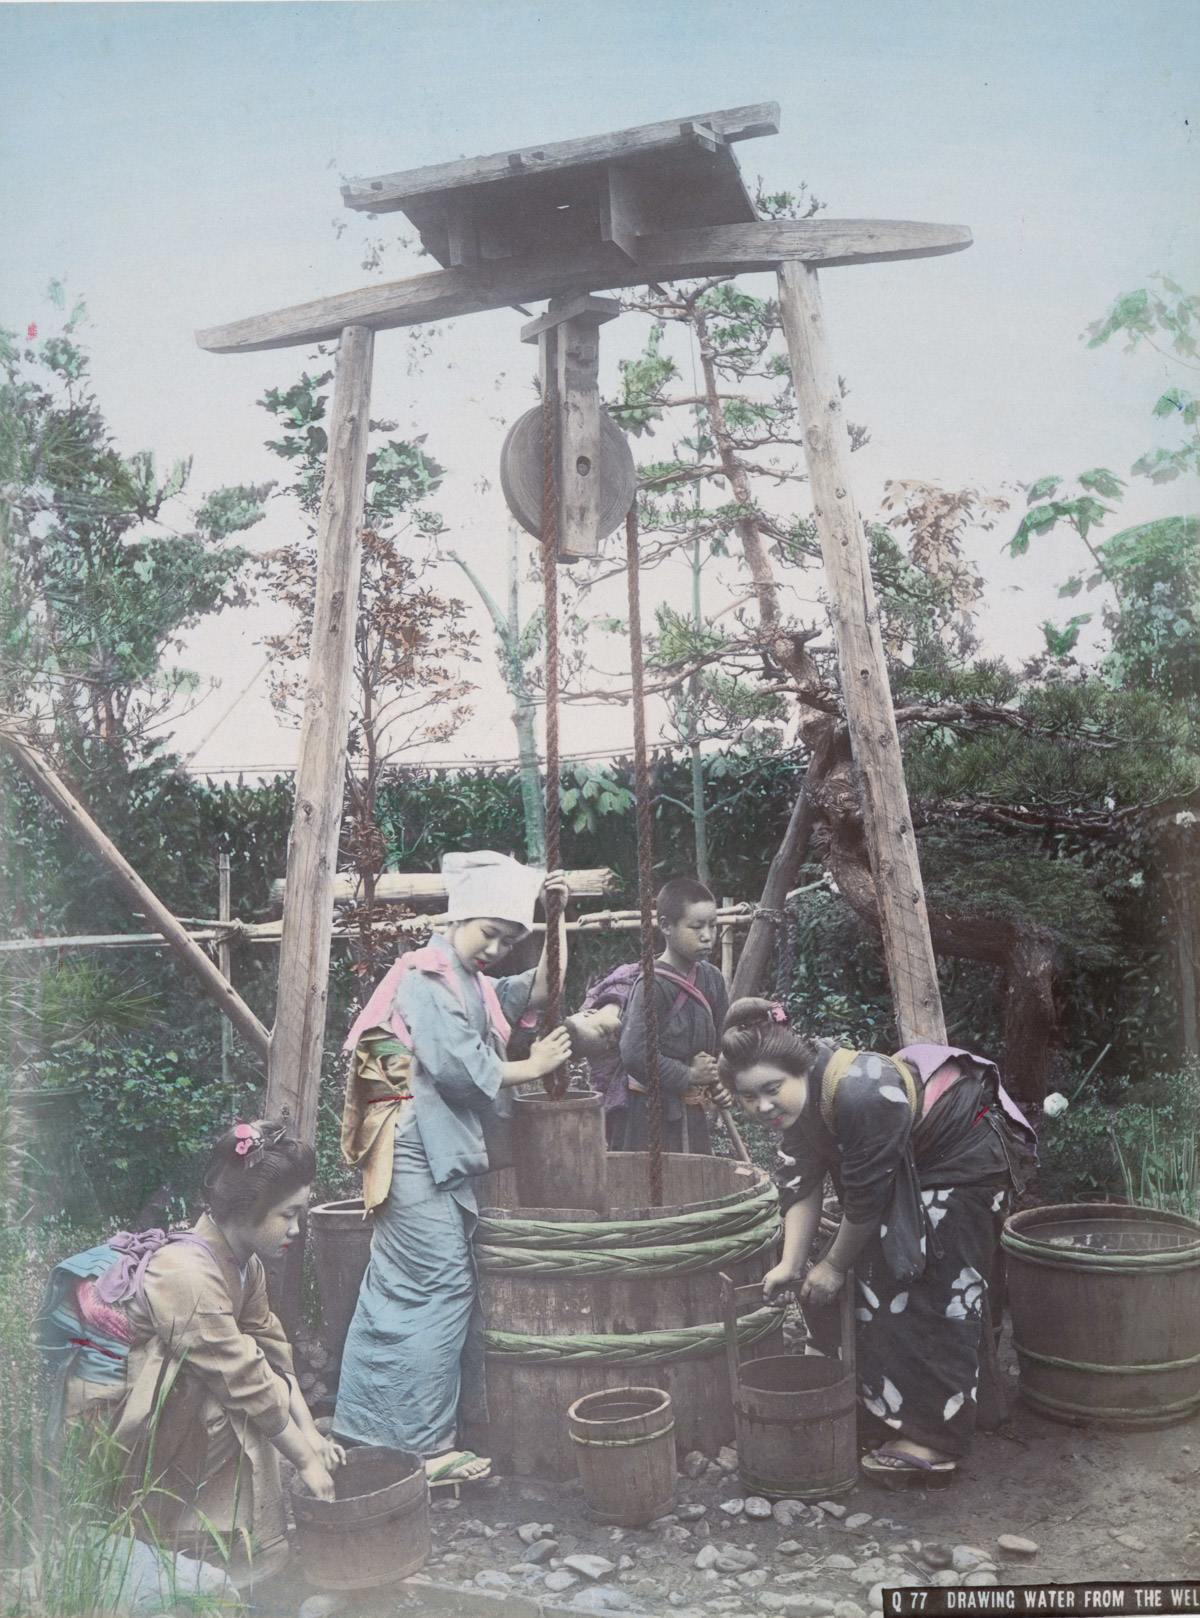 Drawing Water from the Well, Japan, 1890s